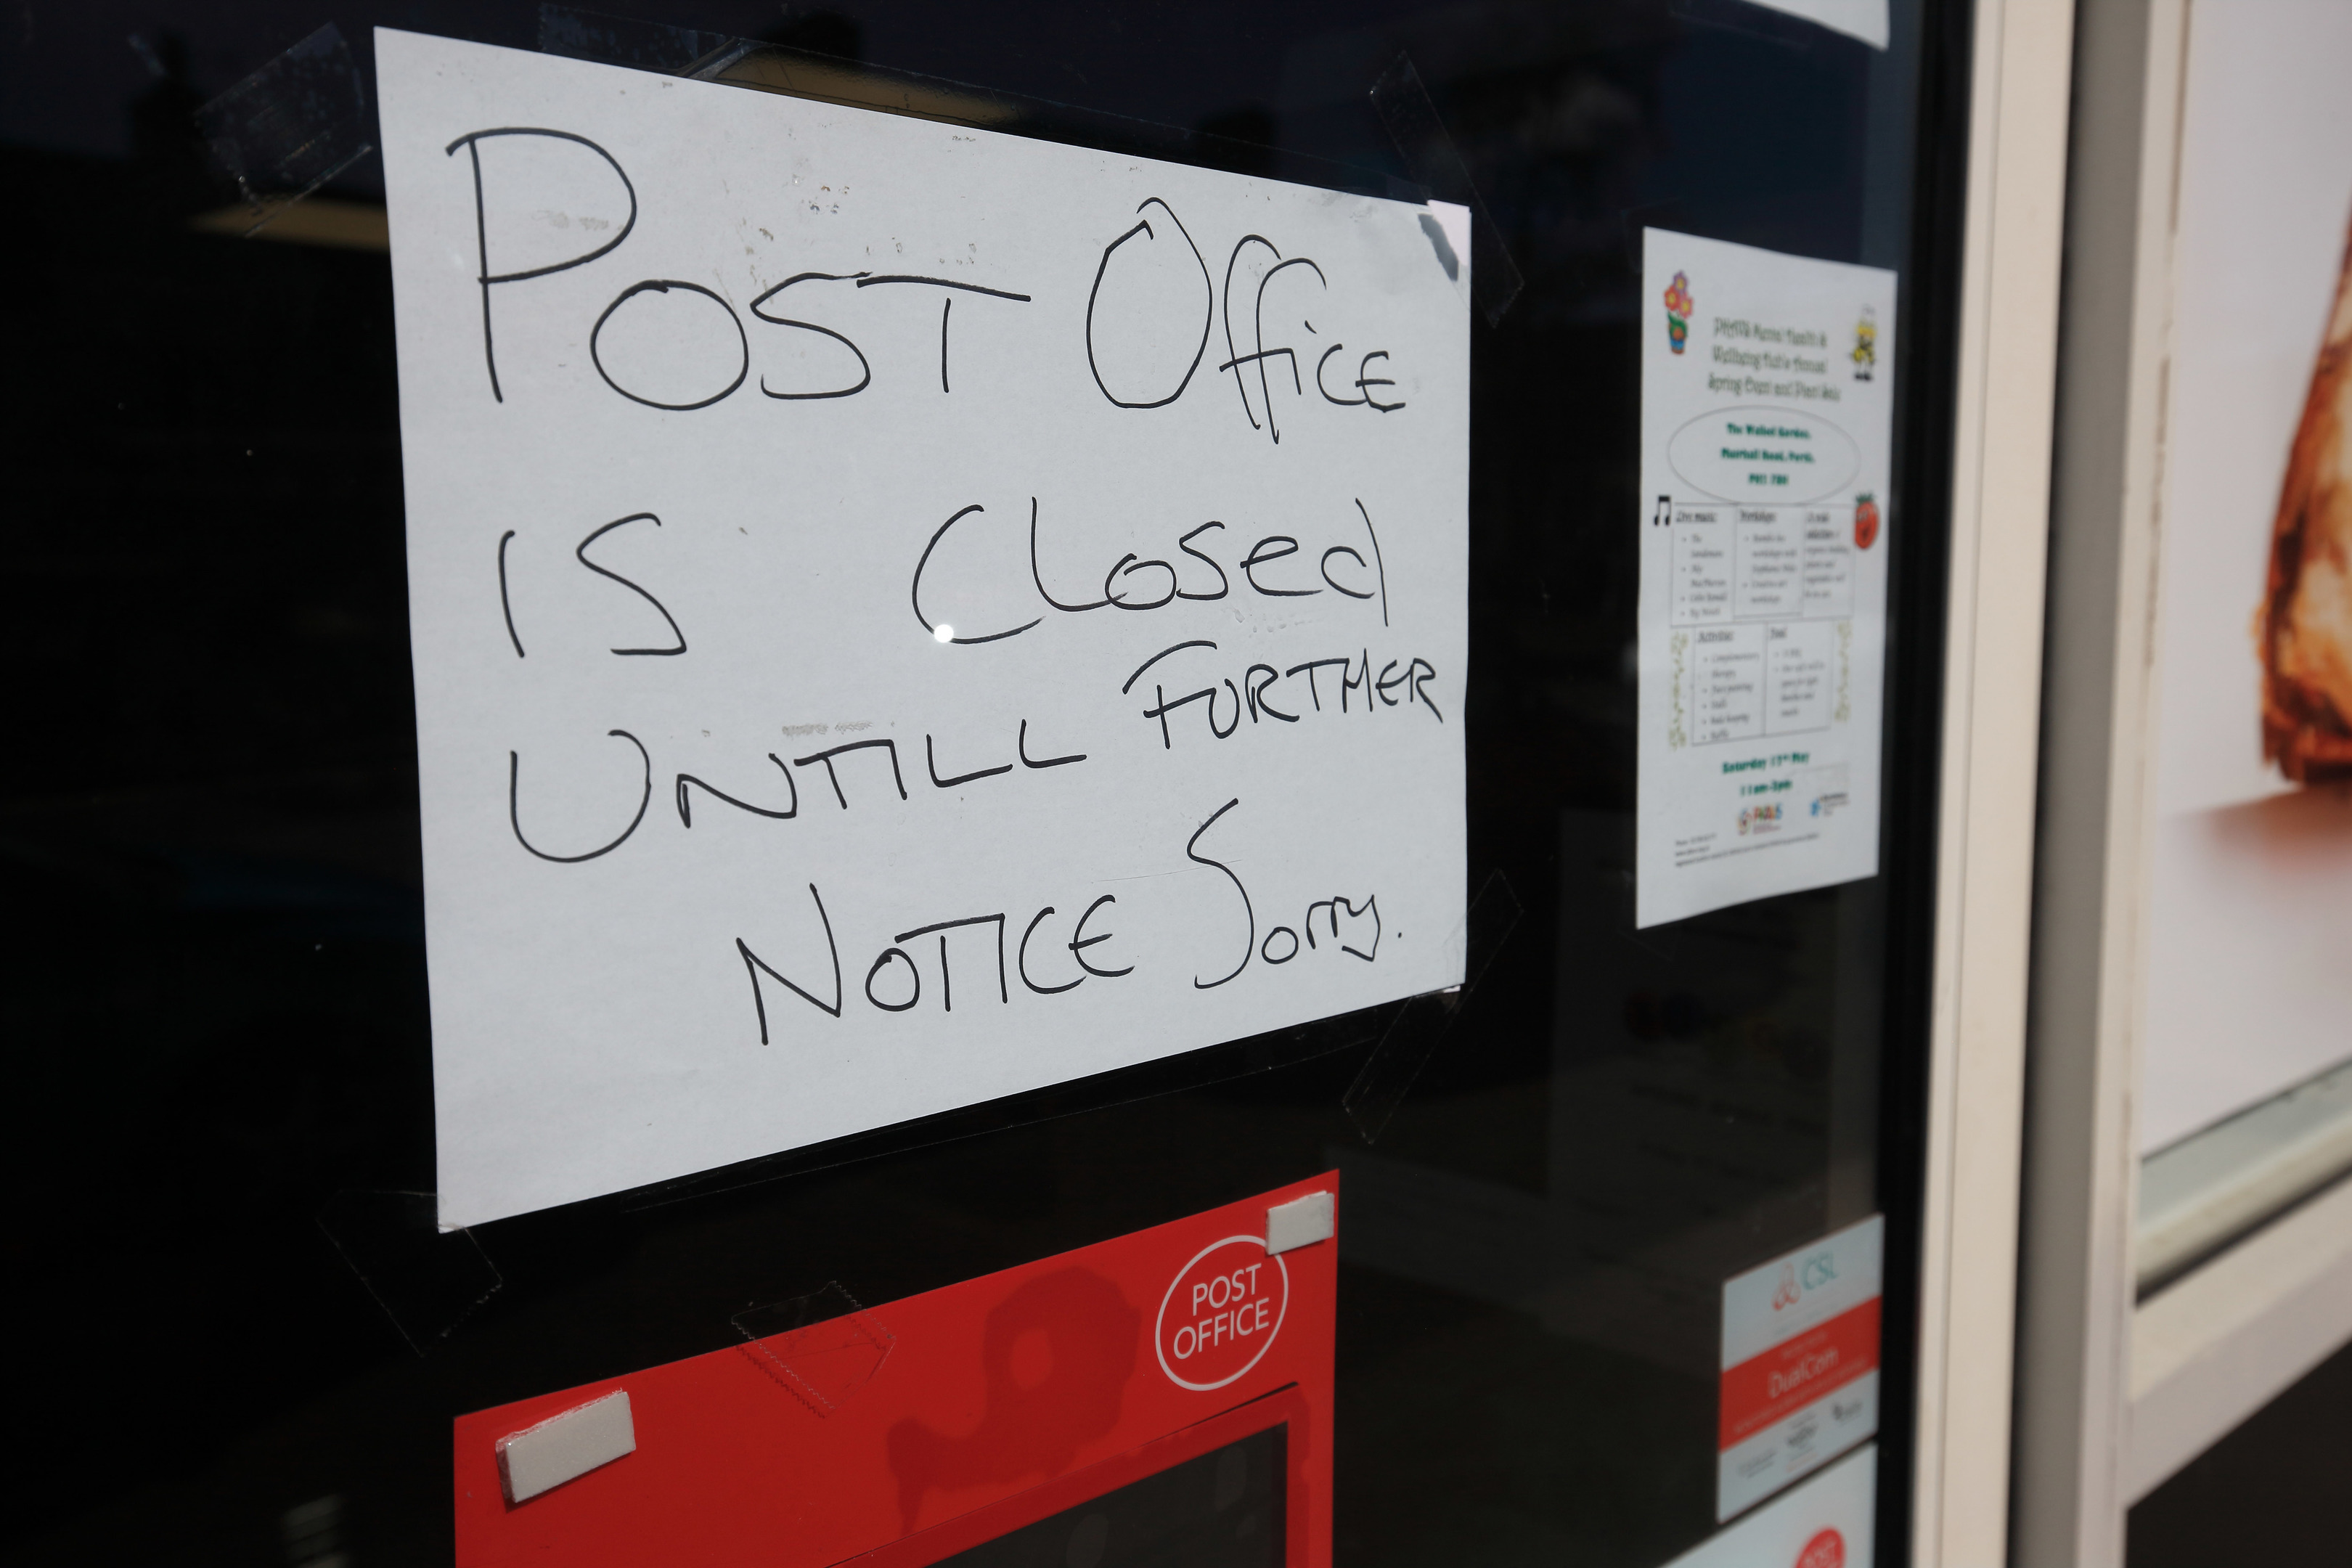 Post Office closes suddenly after customer complaints - The Courier